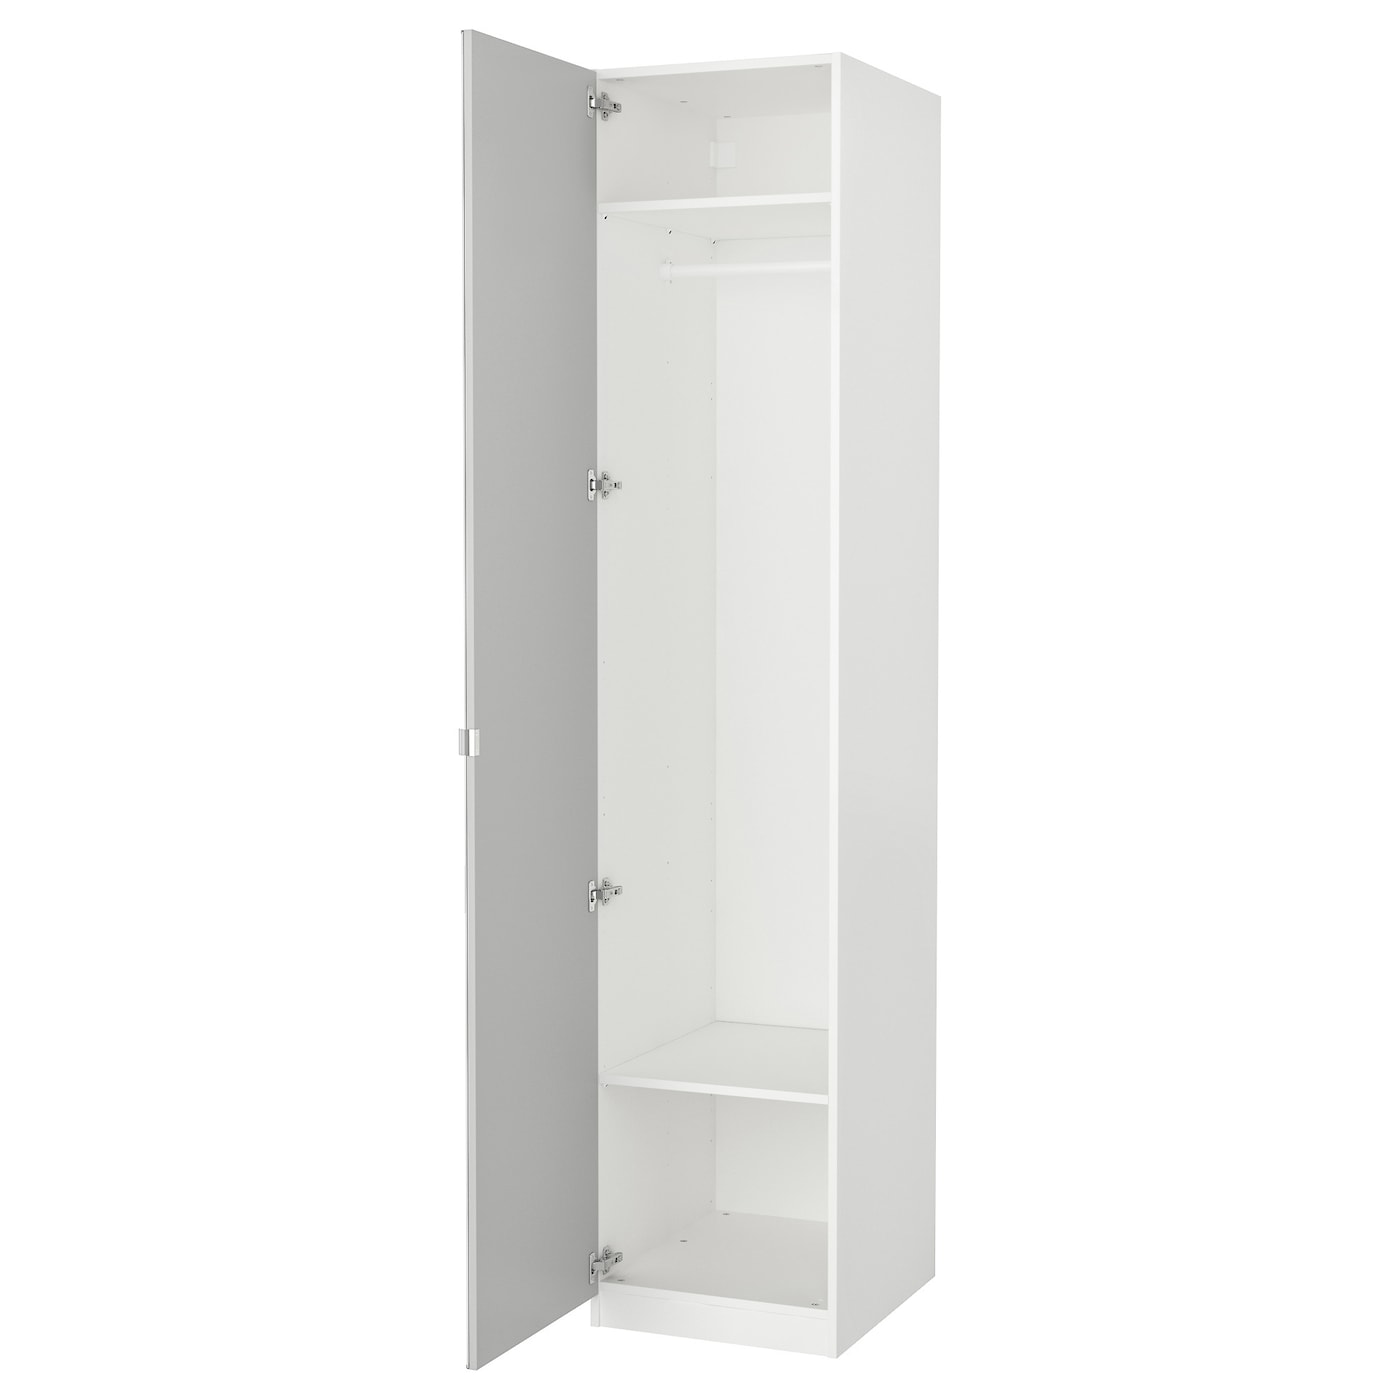 Pax wardrobe white vikedal mirror glass 50x60x236 cm ikea for Miroir 50 x 70 cm